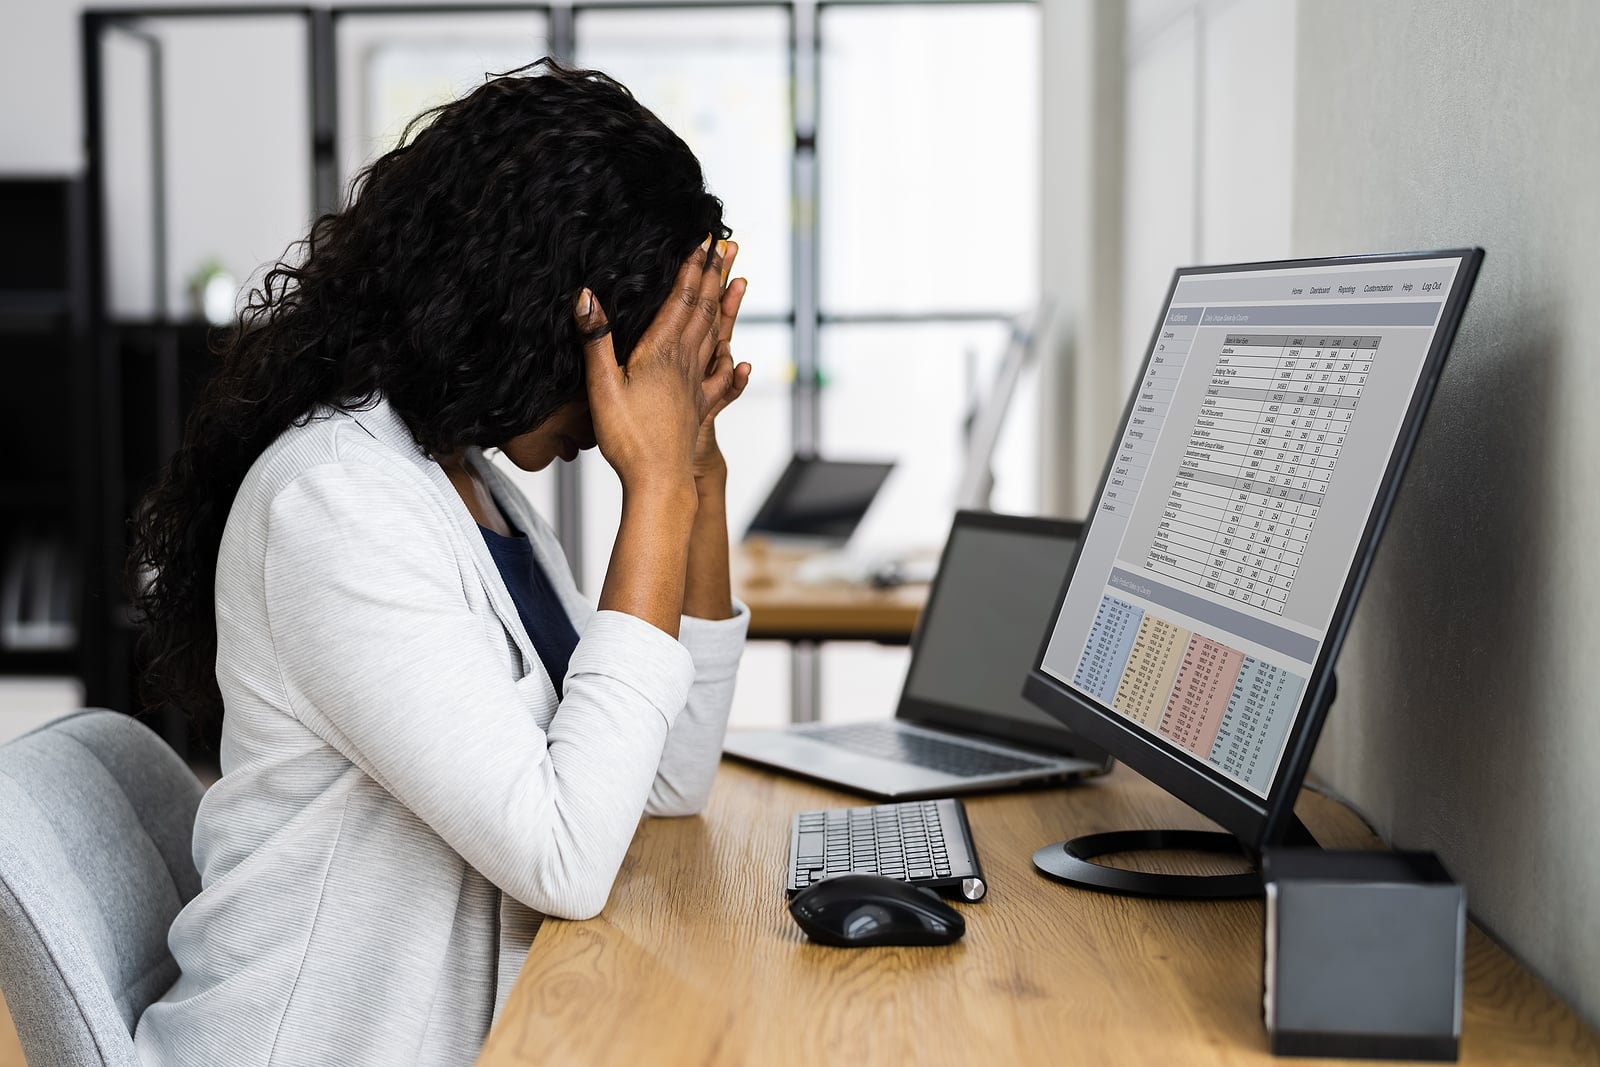 Why am I always tired? Woman stressed looking at computer screen